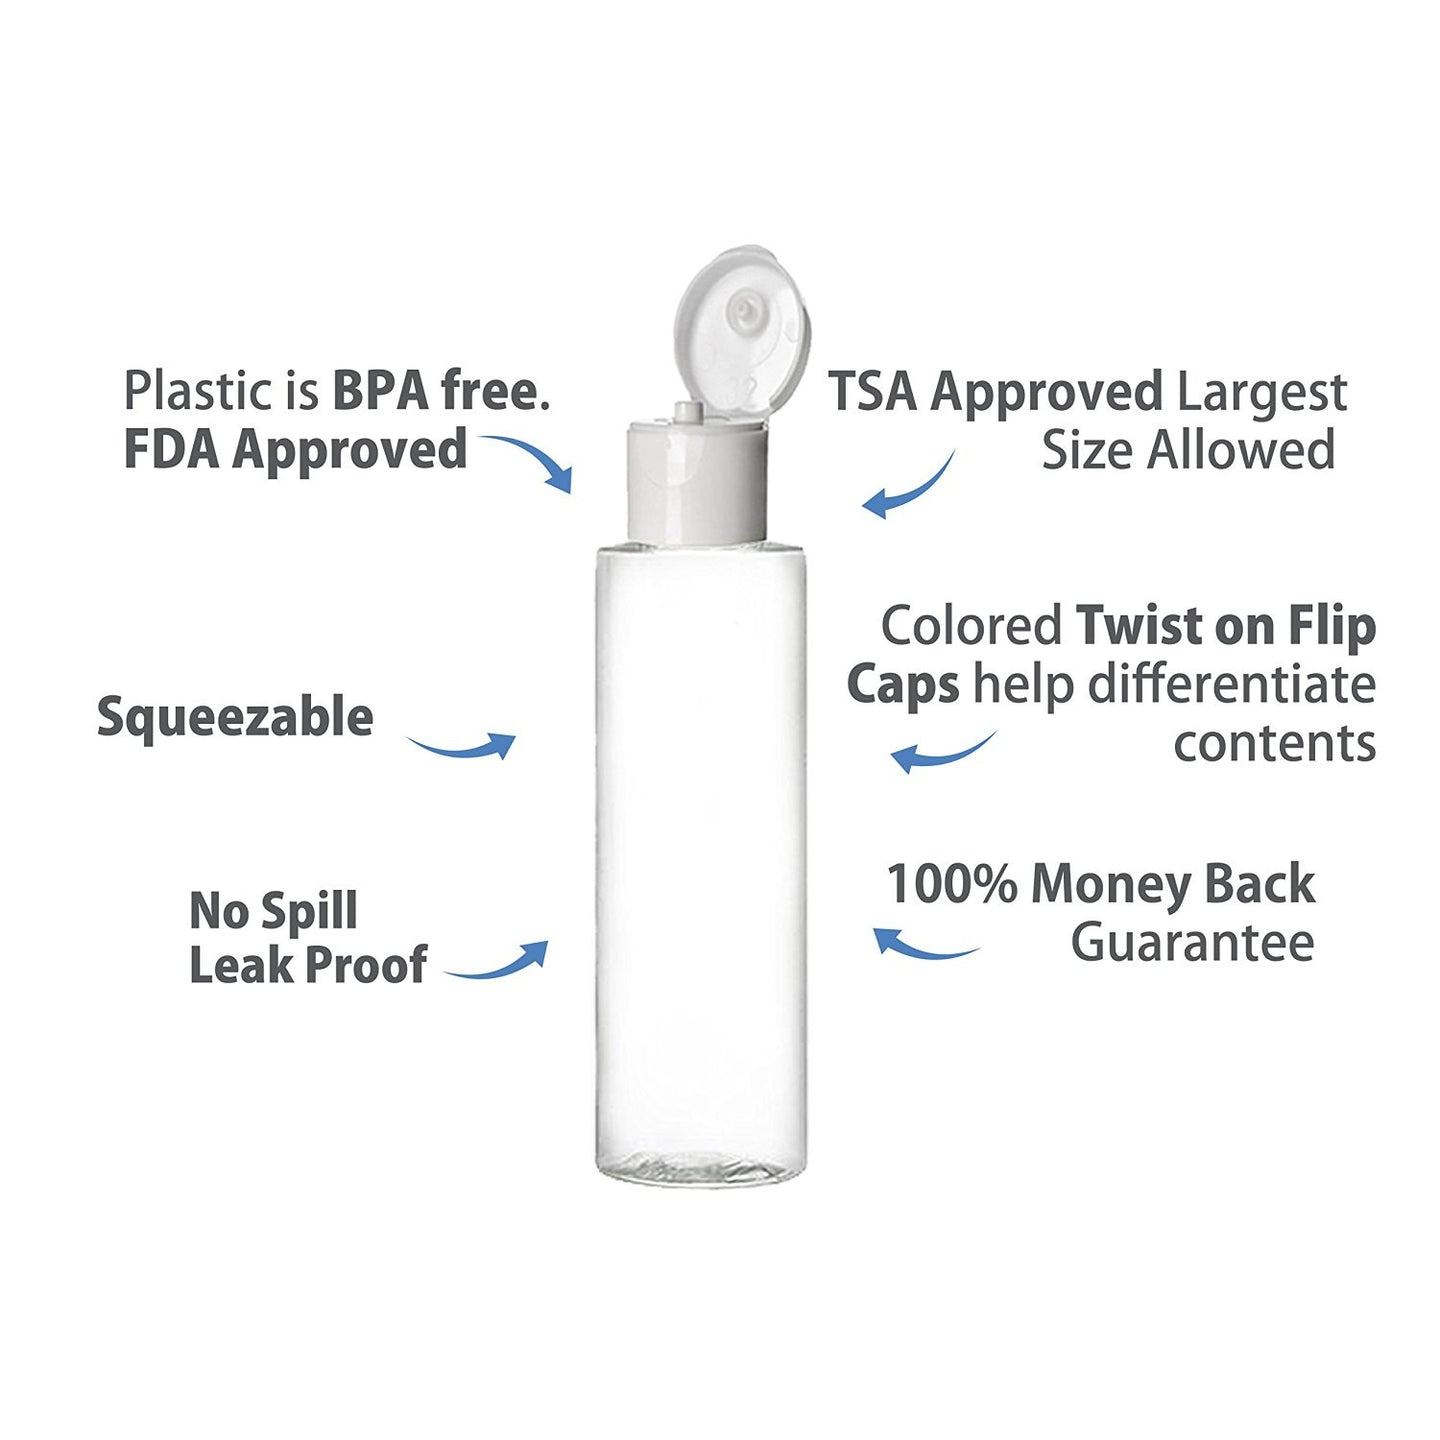 9 Piece 3.4 Oz Squeezable Large Travel Bottle - White